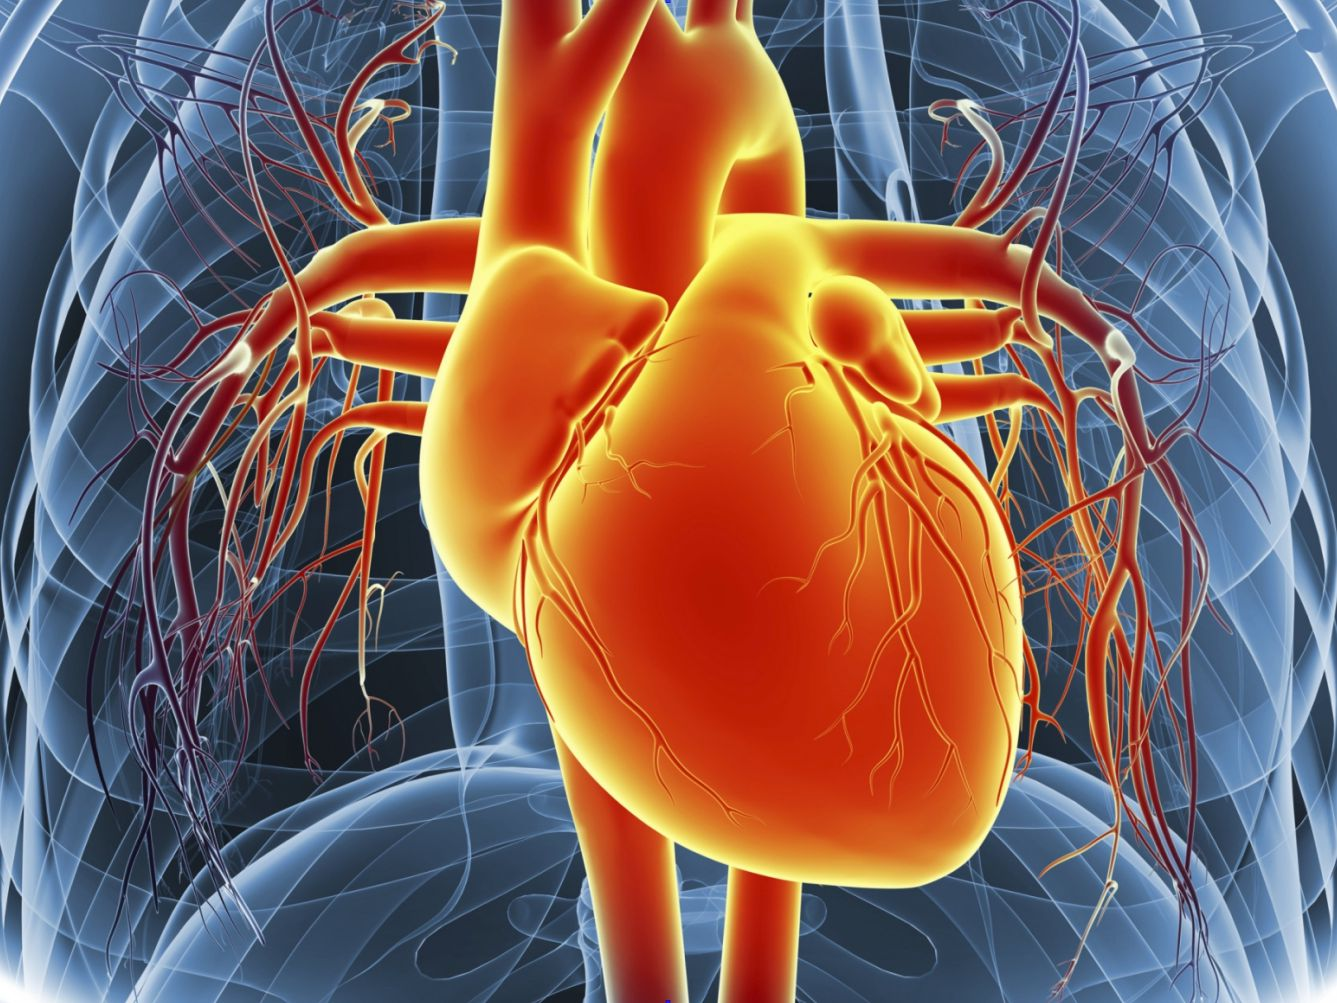 Based On The Diagram Oxygen Flows Through The Circulatory ...